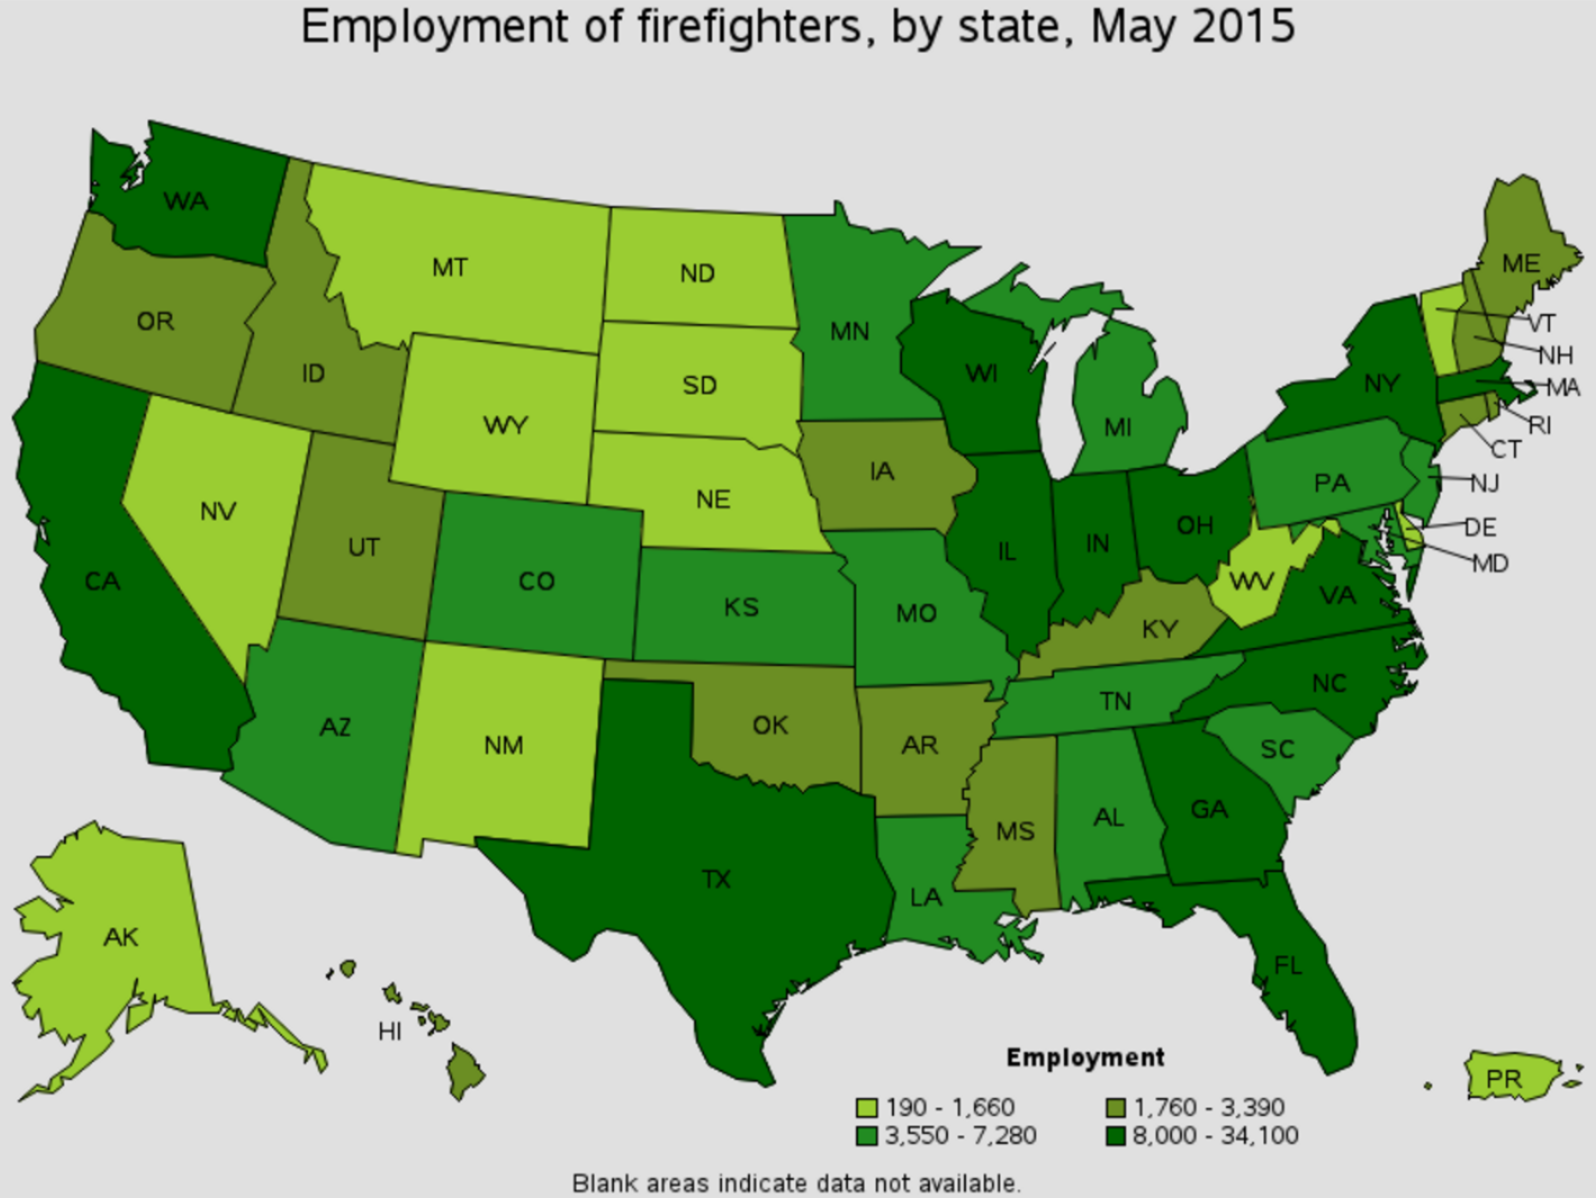 firefighter job outlook by state Mandaree North Dakota